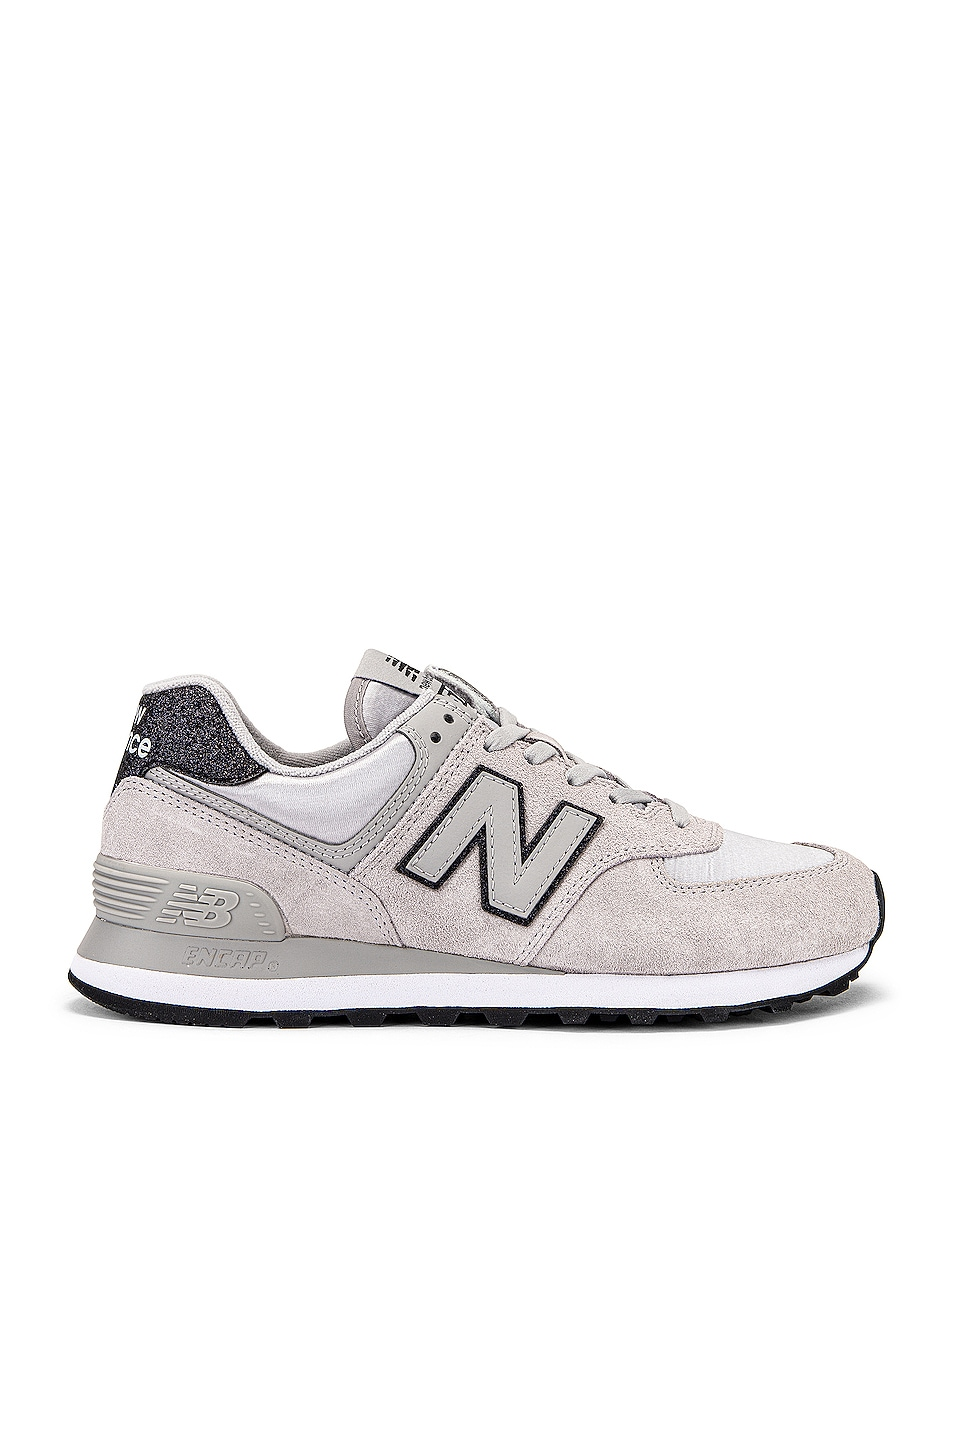 Image 1 of New Balance 574 Sneakers in Rain Cloud & White Suede